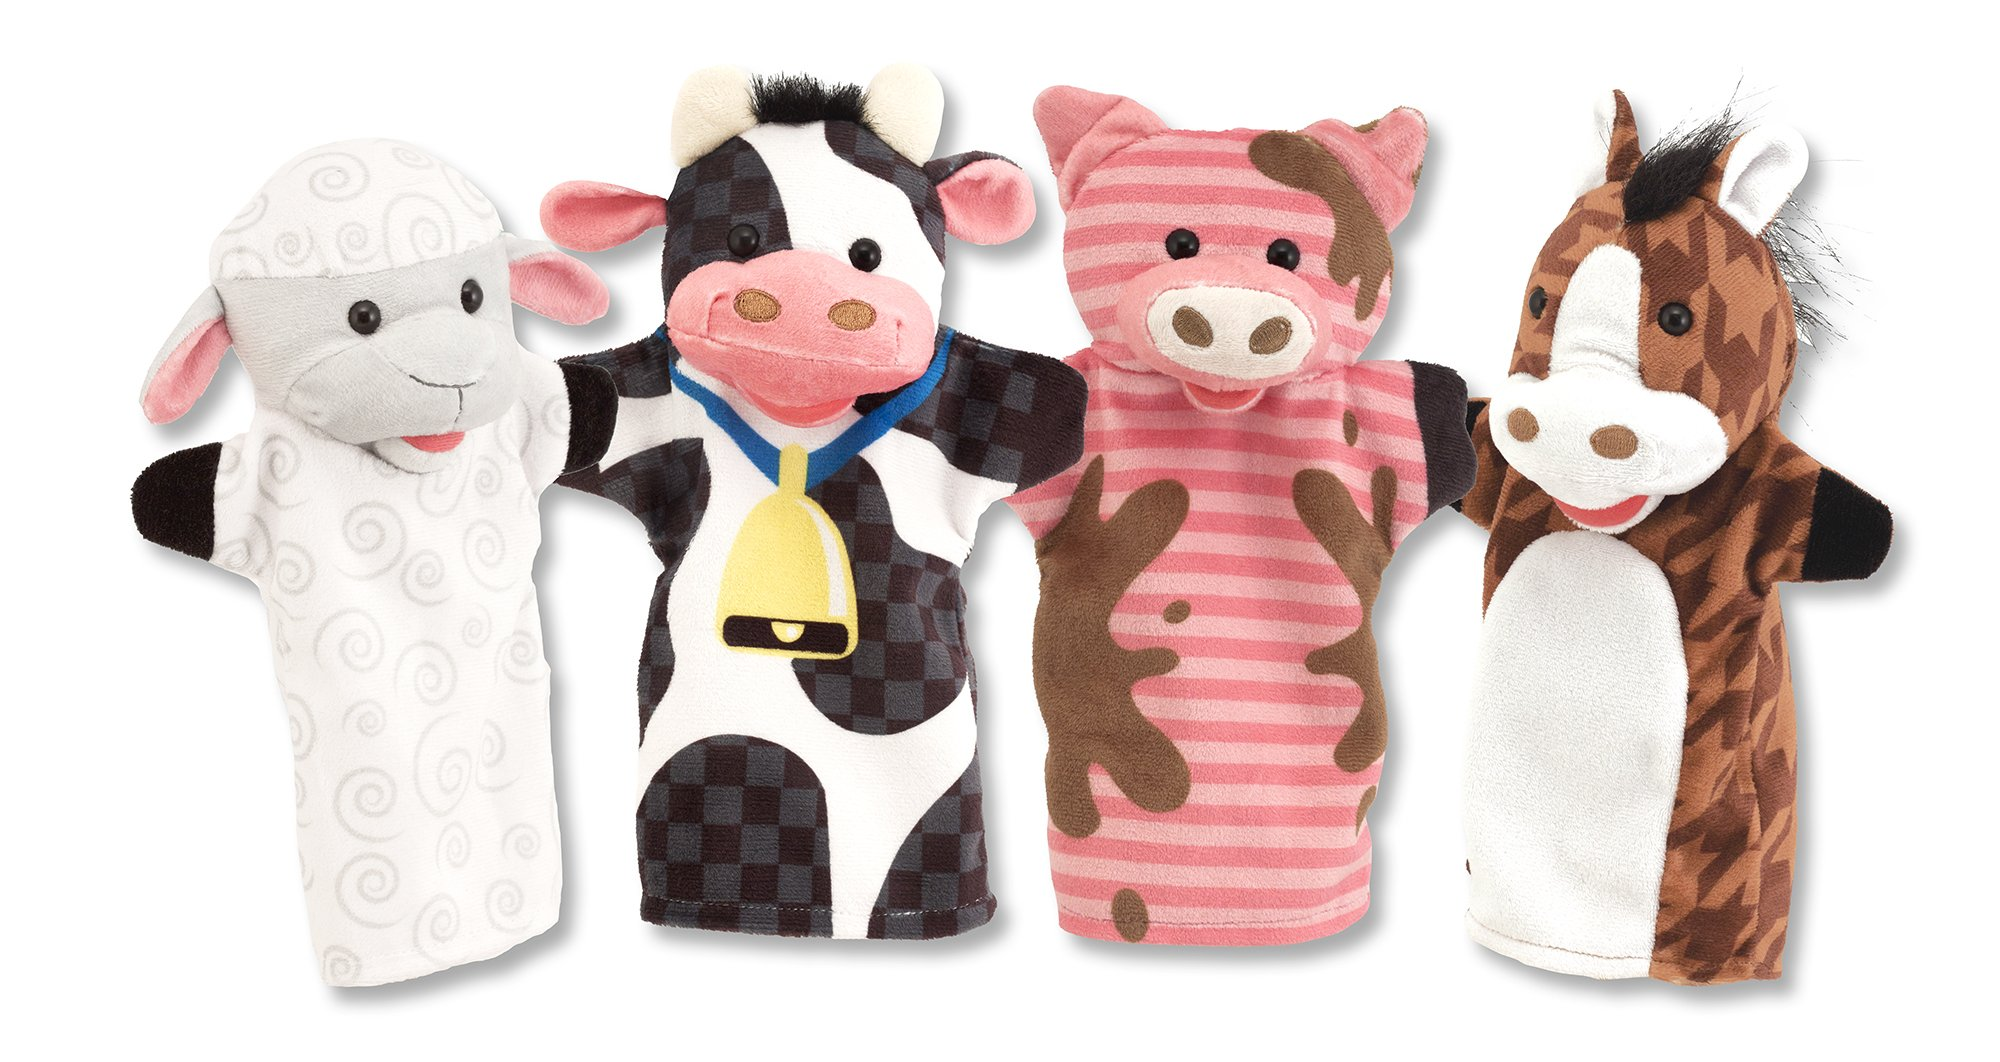 Melissa & Doug Farm Friends Hand Puppets (Set of 4) - Cow, Horse, Sheep, and Pig